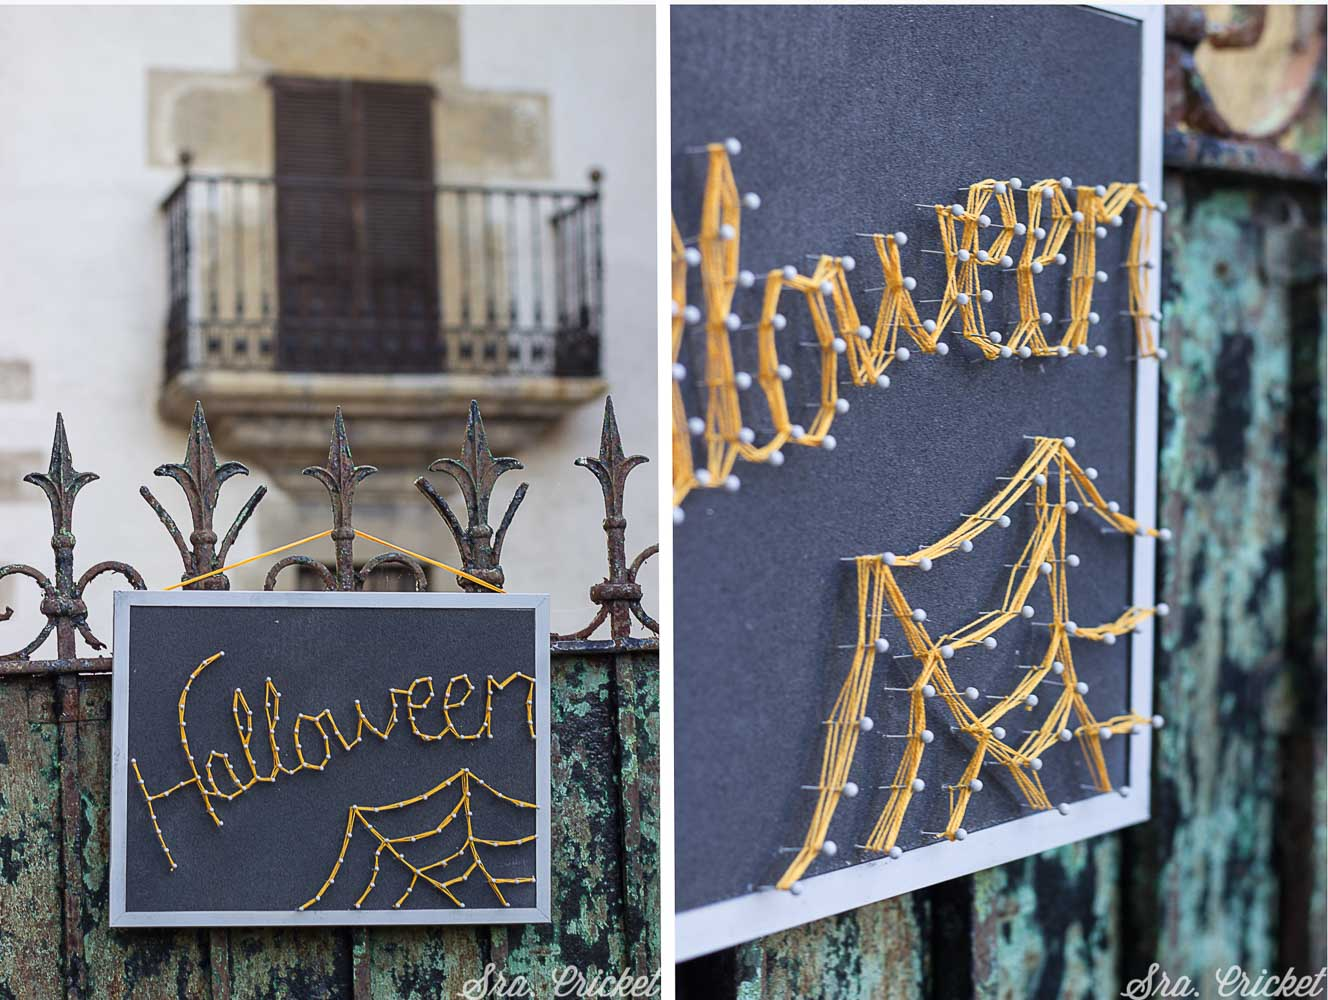 string art hilorama de halloween